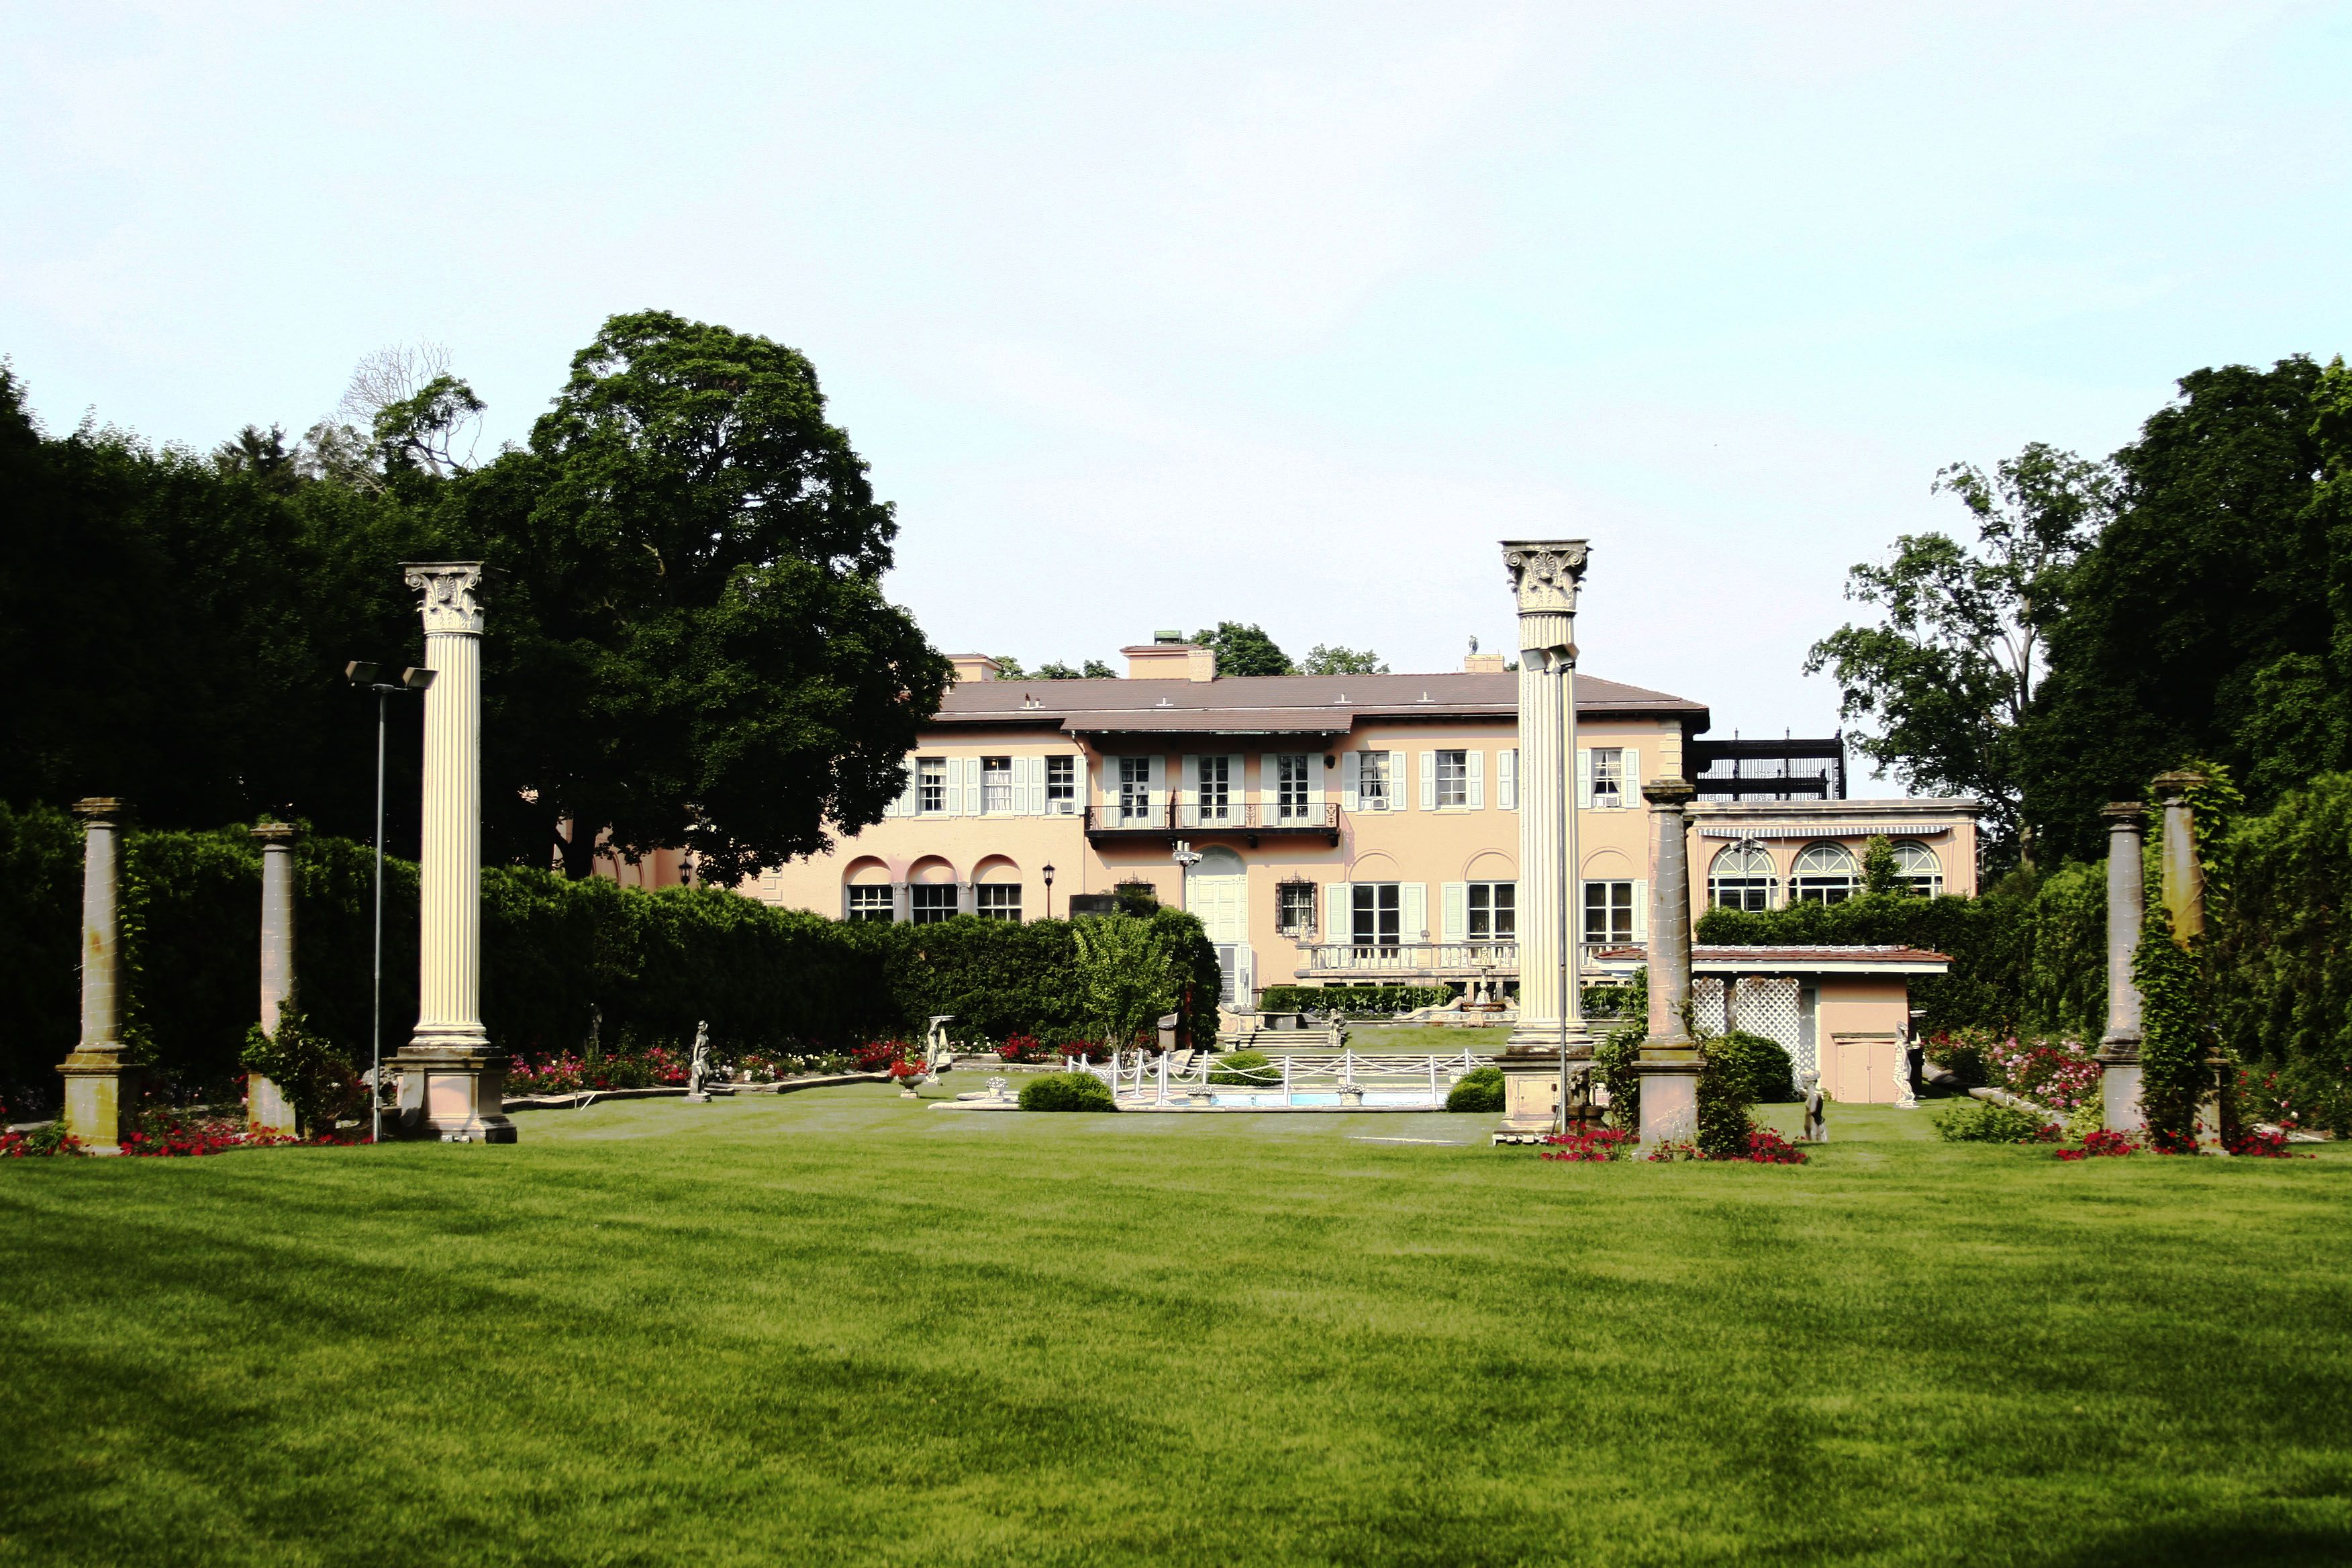 Backyard View of Mansion   Event Spaces & Gardens ...